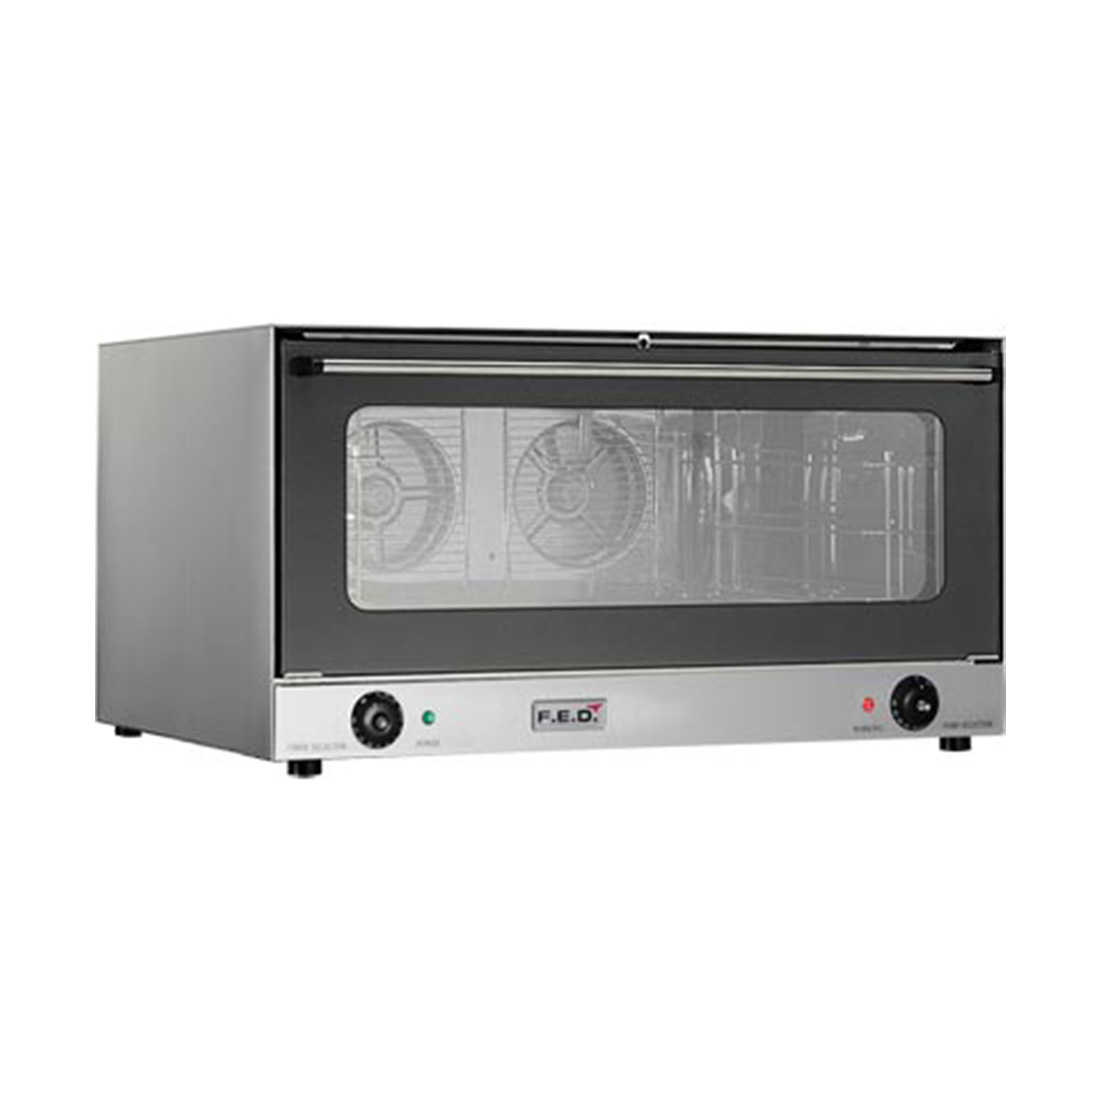 YXD-8A-3 CONVECTMAX OVEN 50 to 300°C